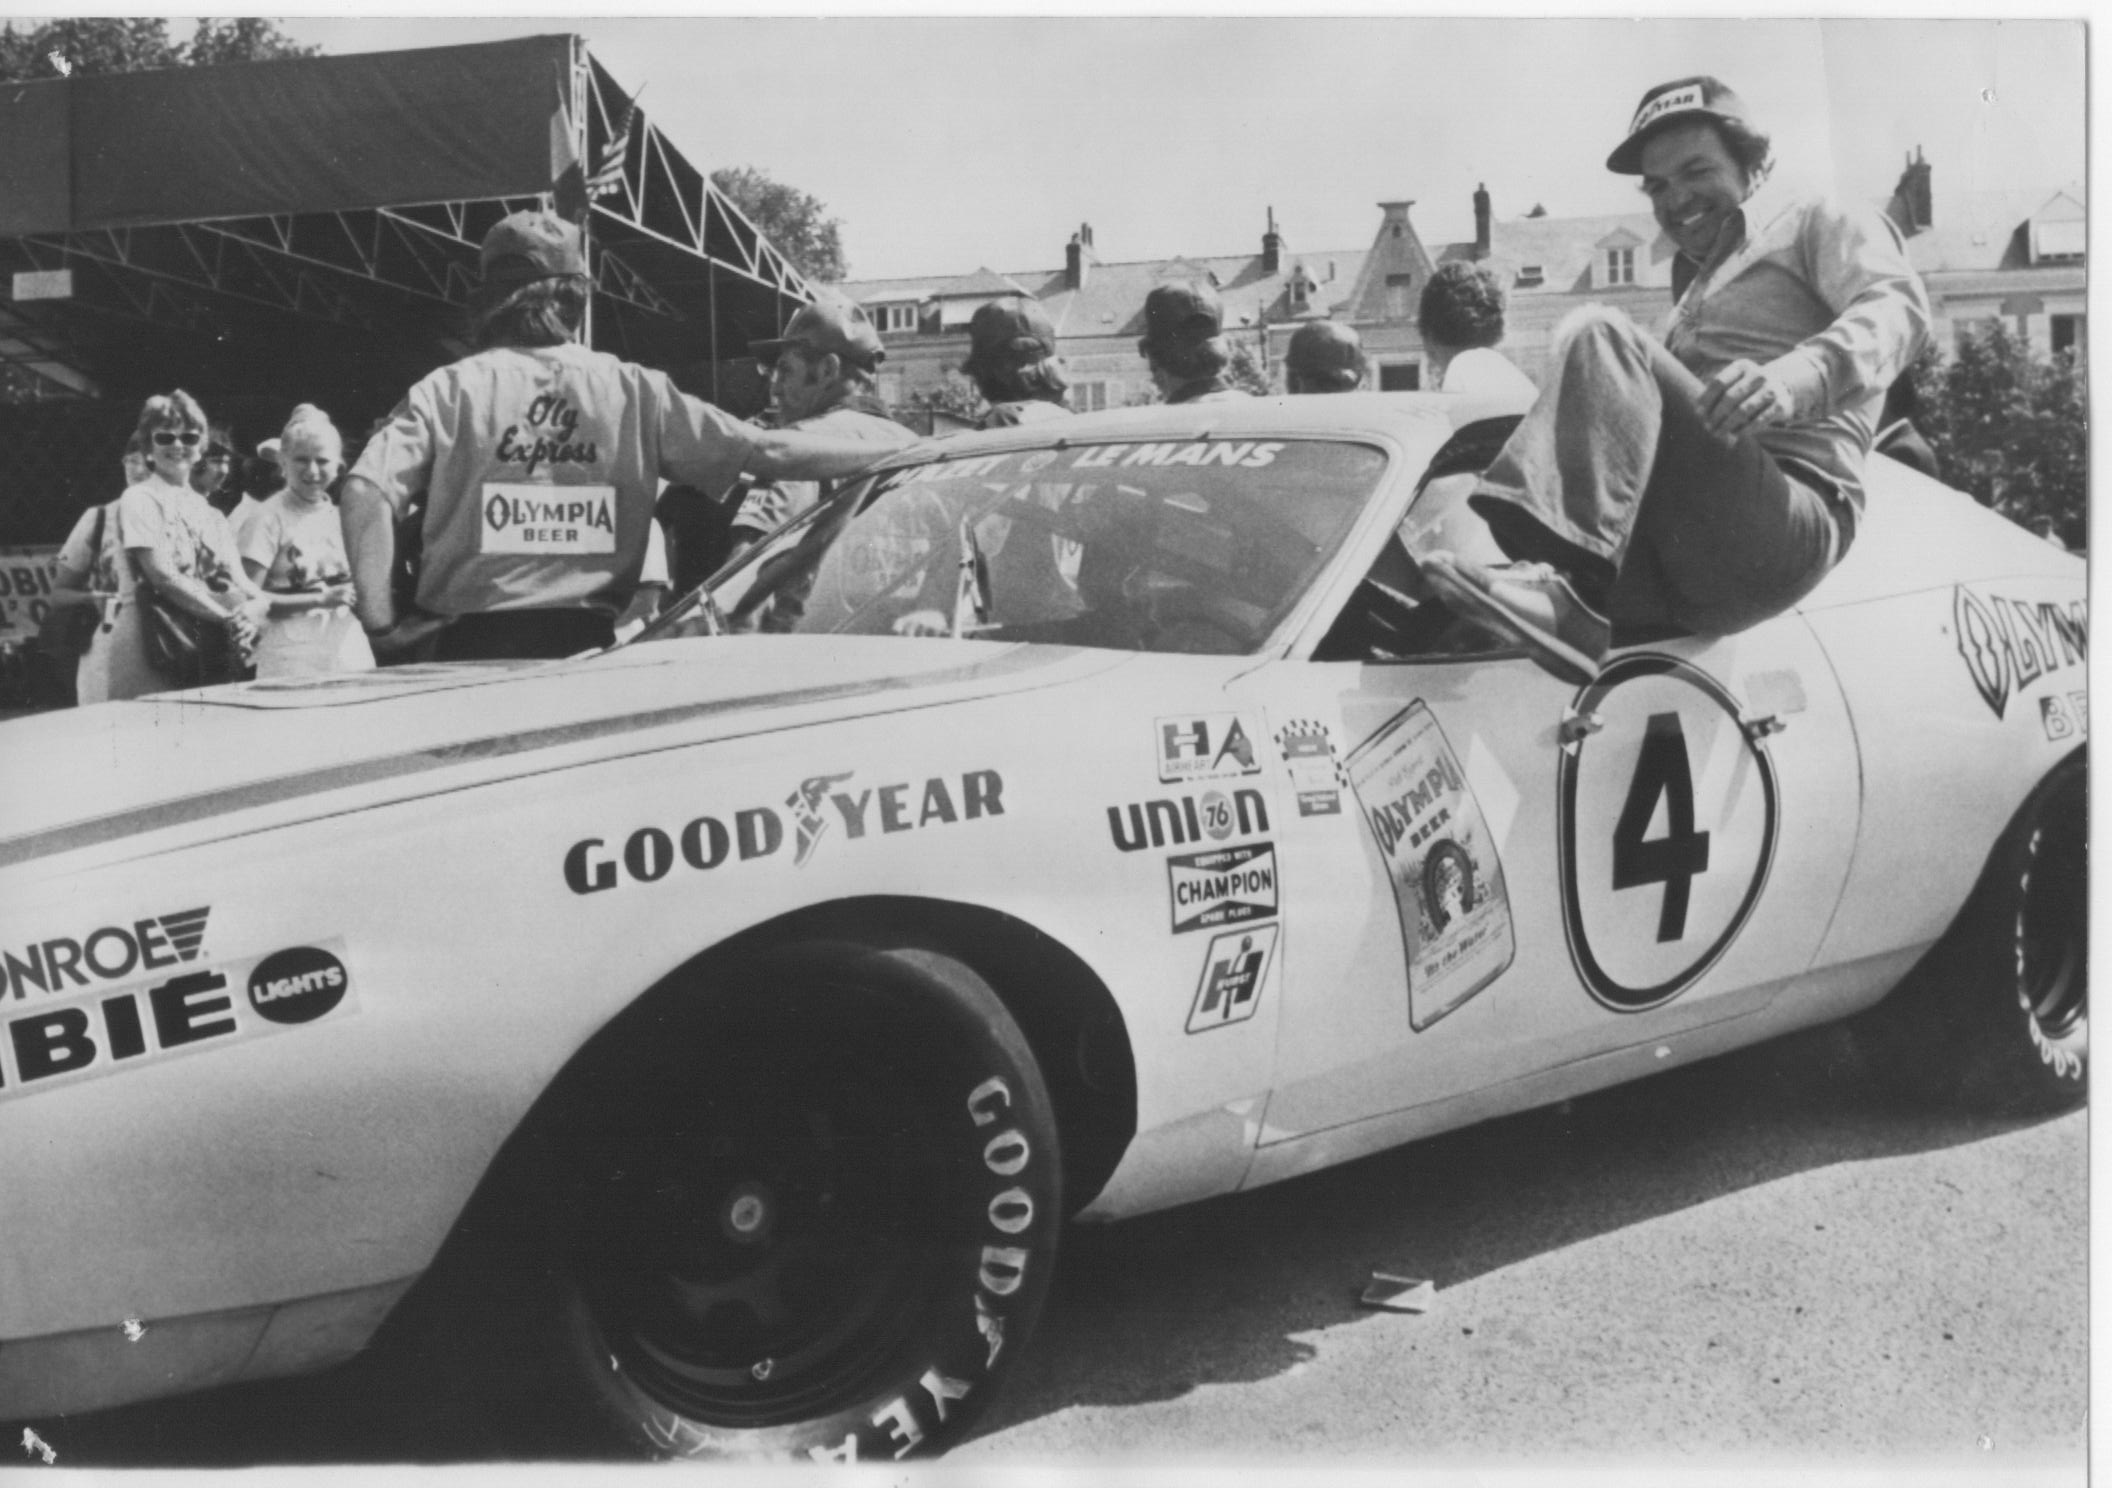 Hershel McGriff in the Charger